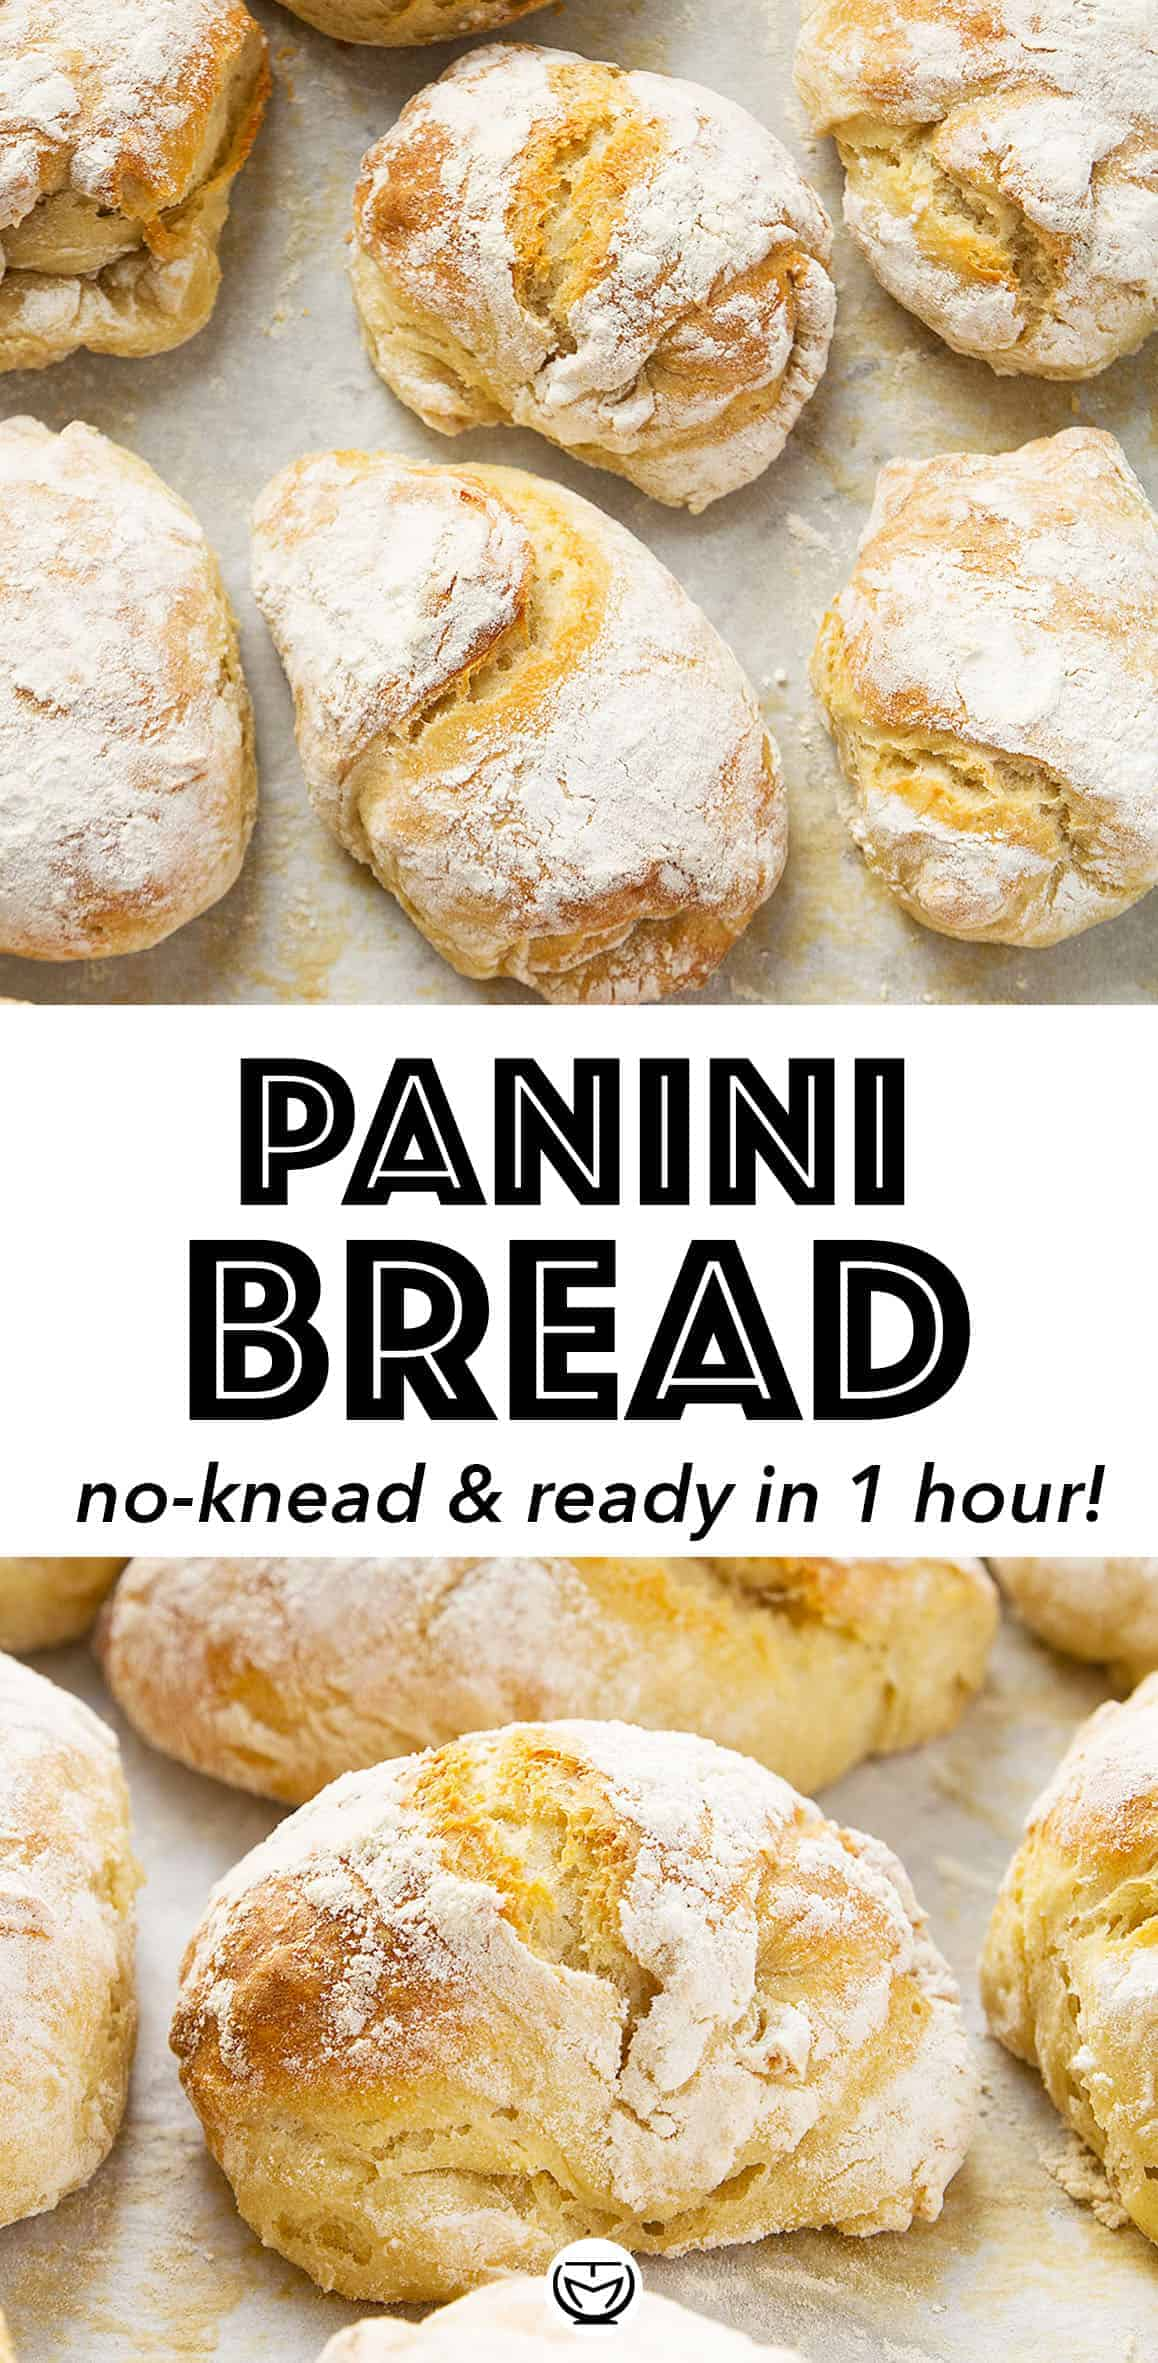 These amazing and super easy panini bread will make your kitchen smell like an Italian bakery! It's crusty, delicious, no-knead and ready in 1 HOUR flat! #breadrecipes #breadrecipehomemade #paninirecipes